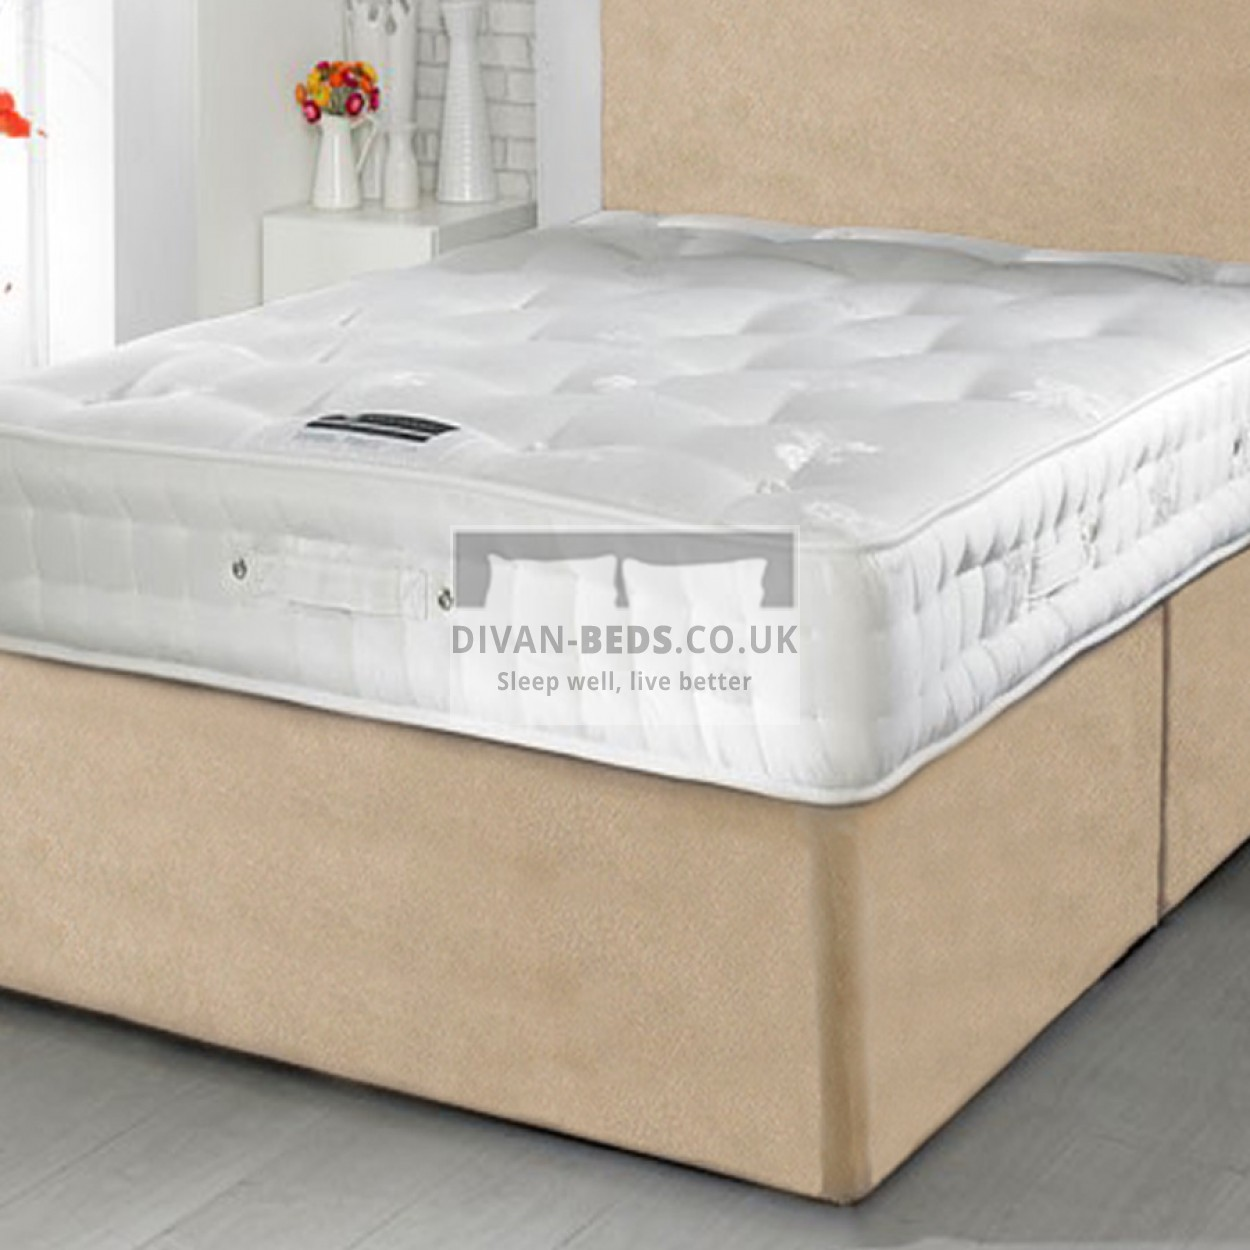 Rupert Divan Bed With 1500 Pocket Spring Memory Foam Mattress Guaranteed Cheapest Free